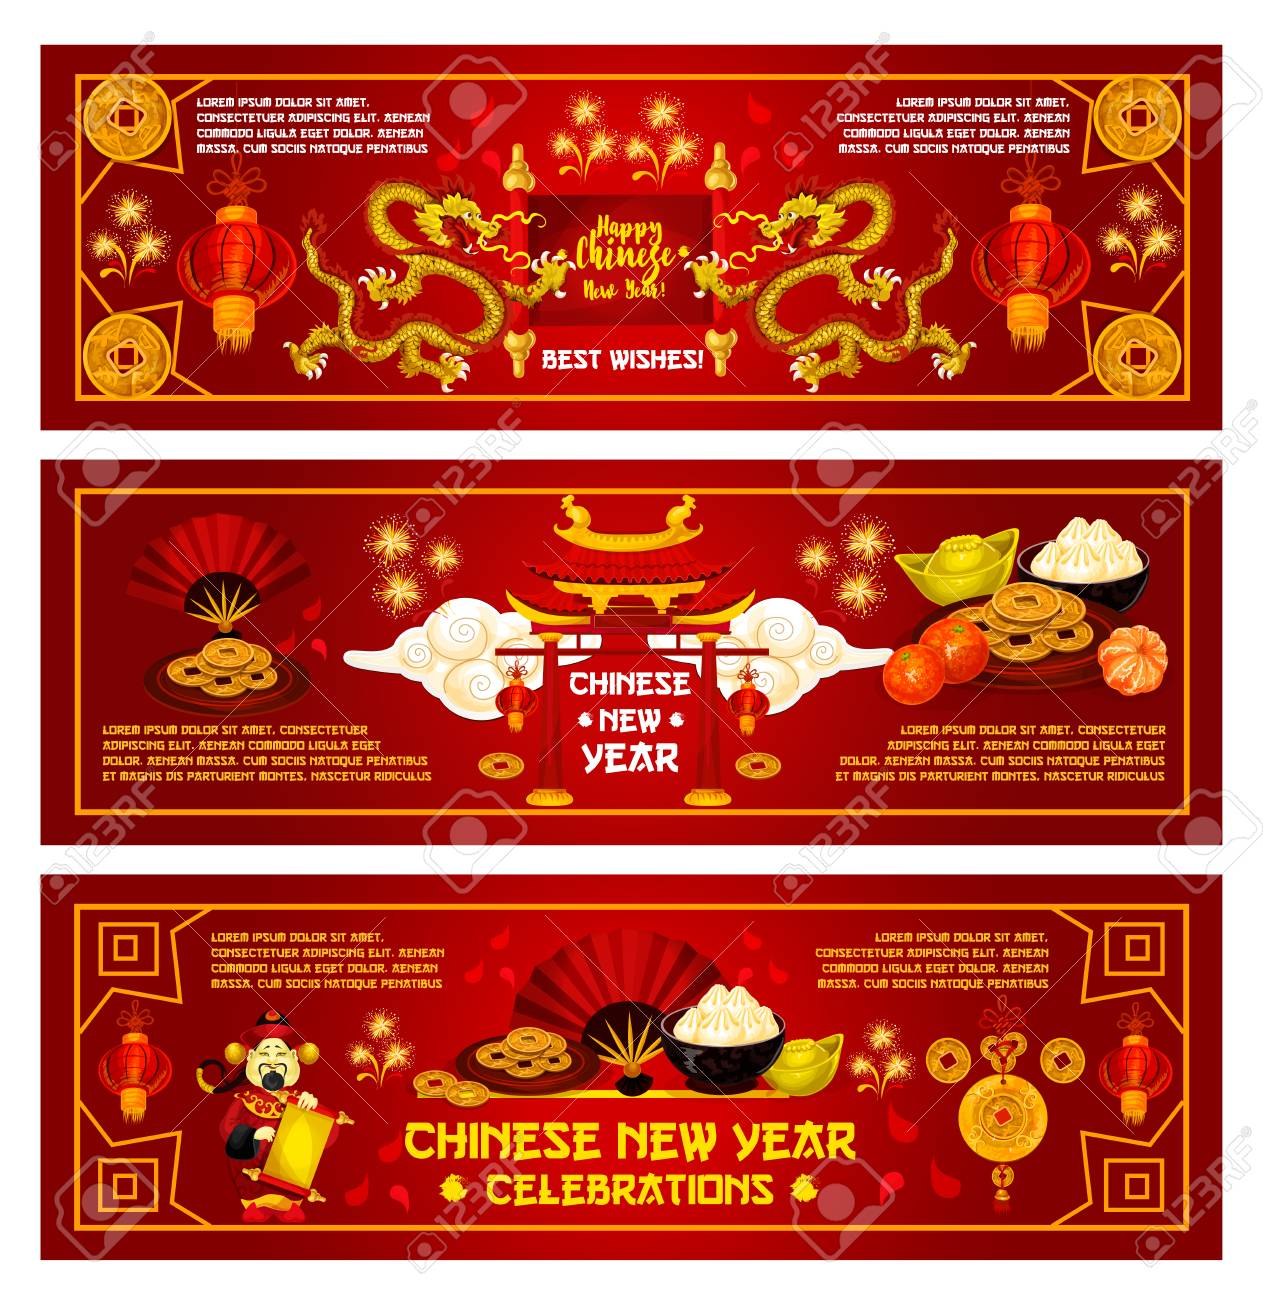 Happy chinese new year greeting card for china lunar holiday happy chinese new year greeting card for china lunar holiday of traditional chinese symbols vector m4hsunfo